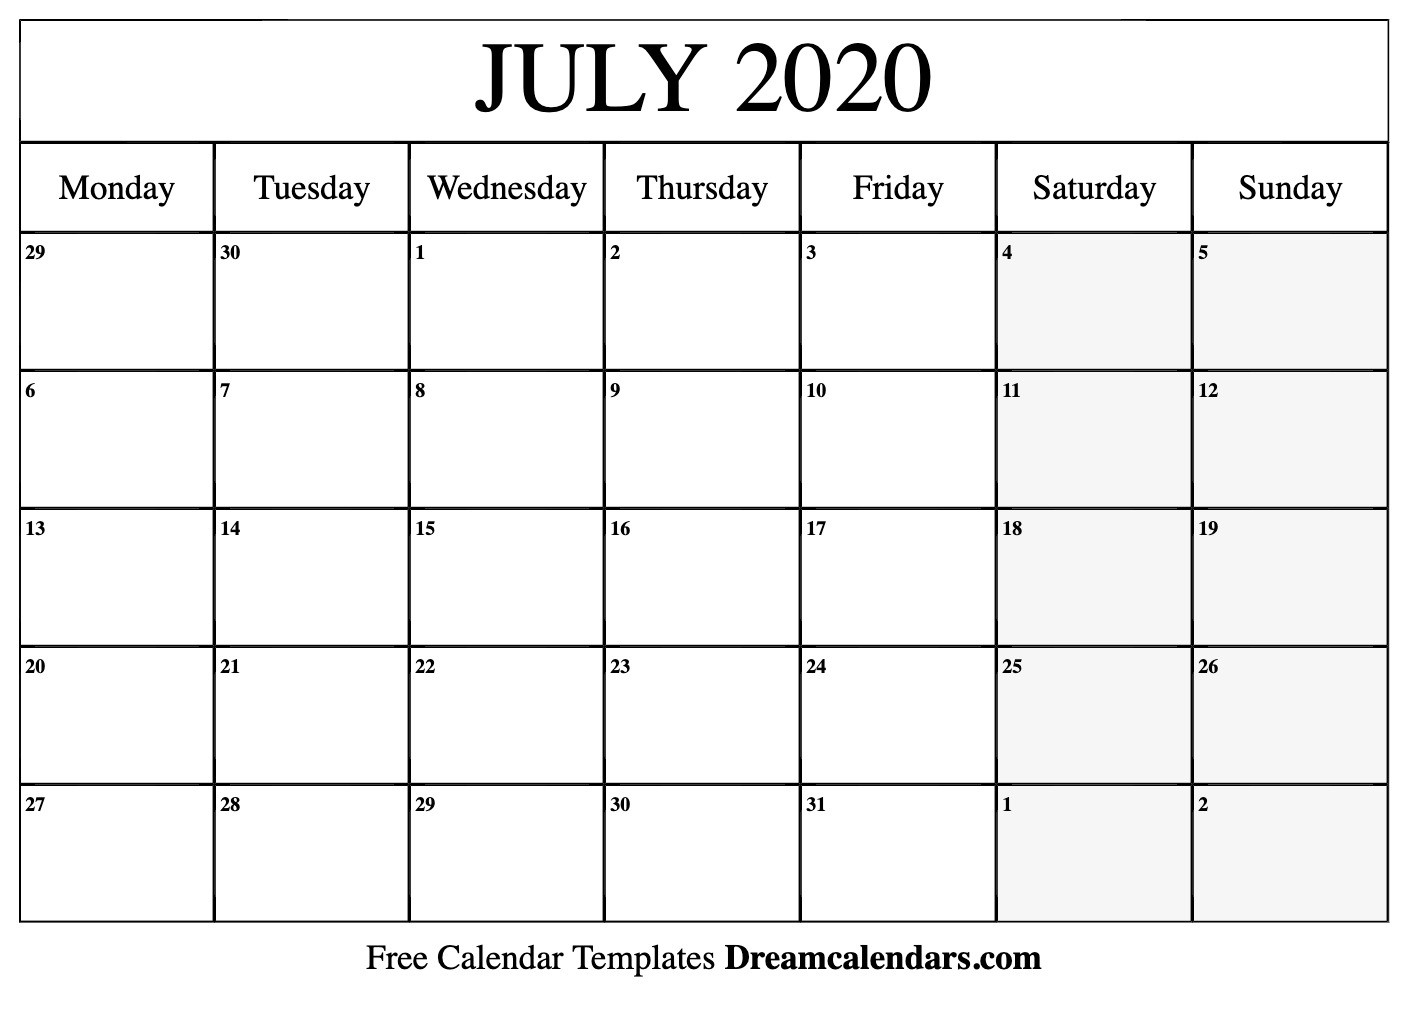 Printable July 2020 Calendar  Sept 2020 Calender Monday Thru Sunday